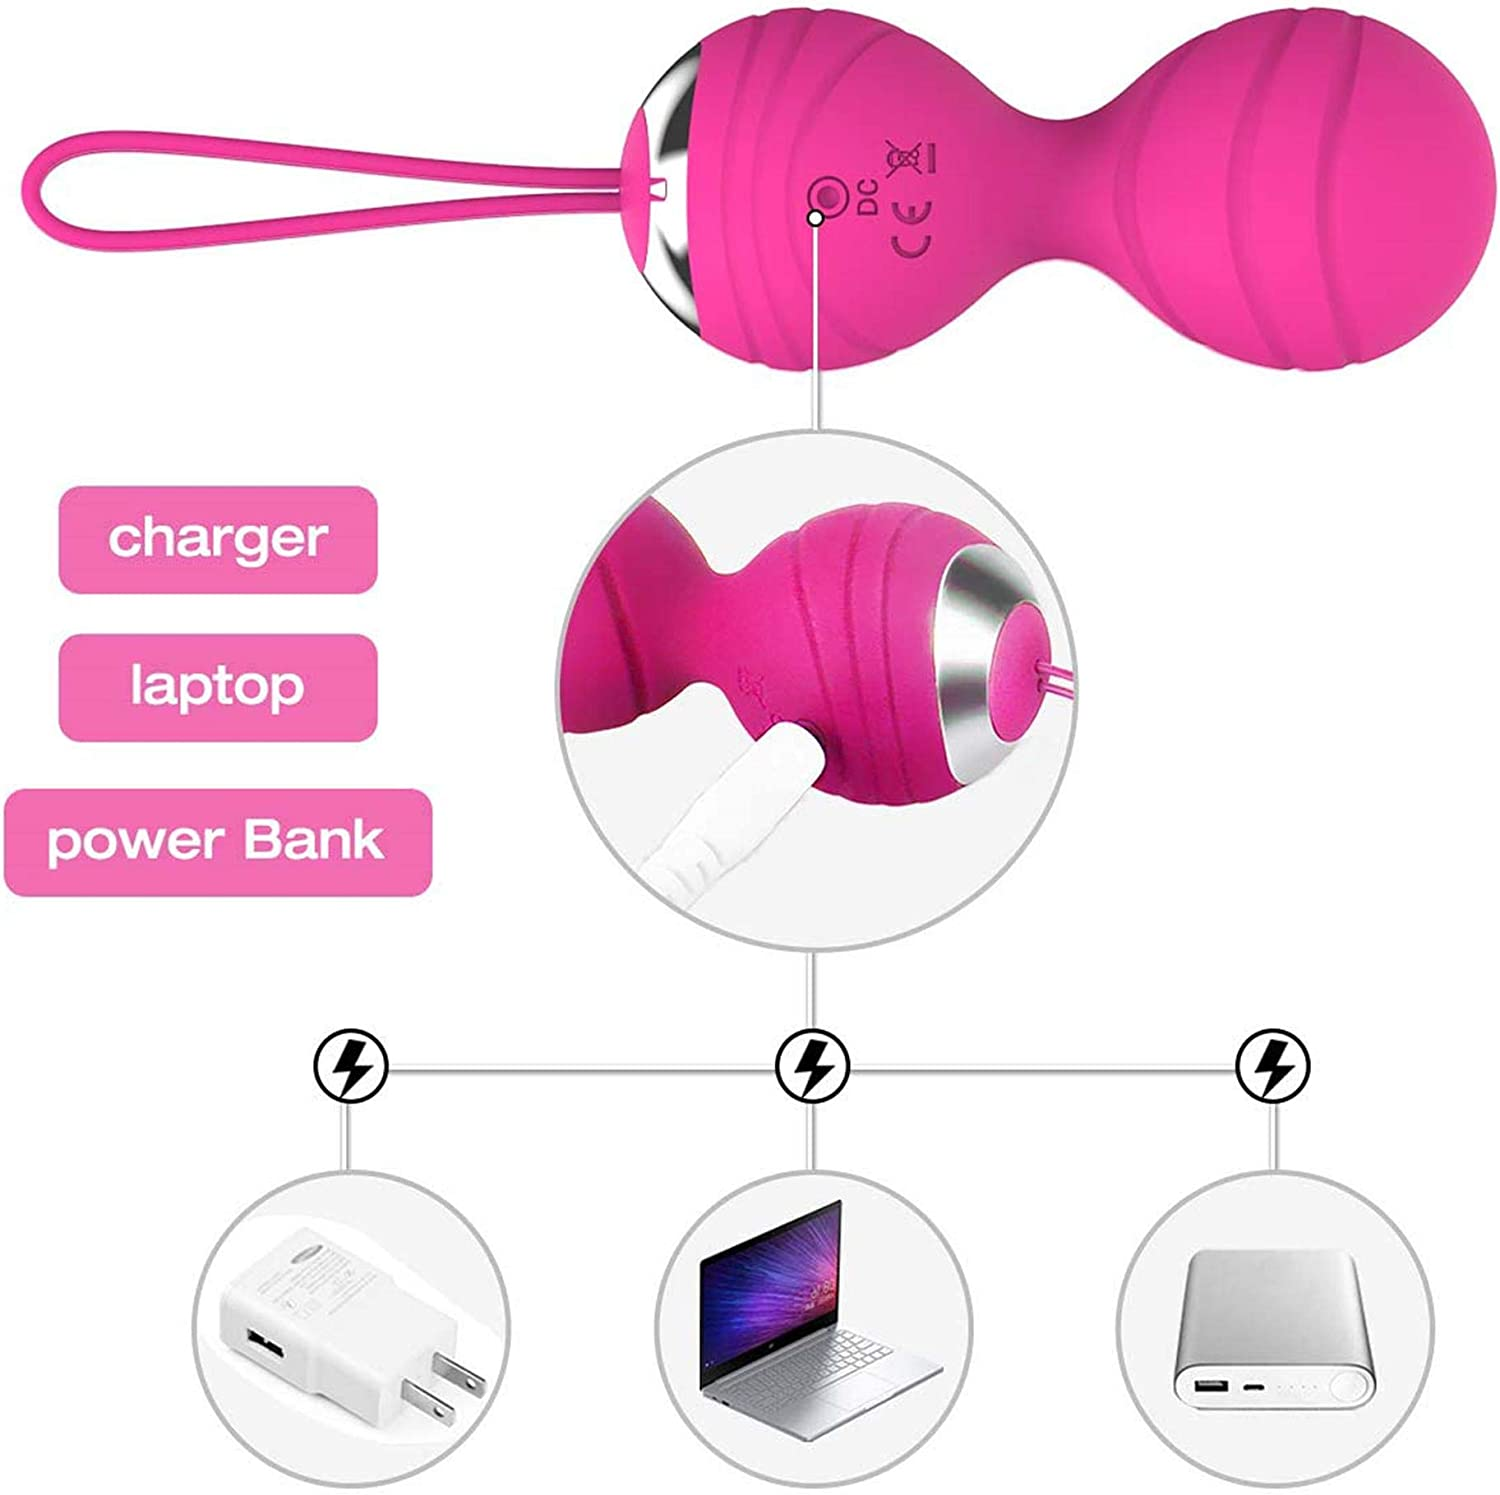 Abandship 2 in 1 Kegel Balls Kit - Kegel Exercise Weights Products for Women, 3 Weights Ben Wa Kegel Balls for Beginners & & Advanced, Doctor Recommended for Bladder Control and Pelvic Floor Training: Health & Personal Care